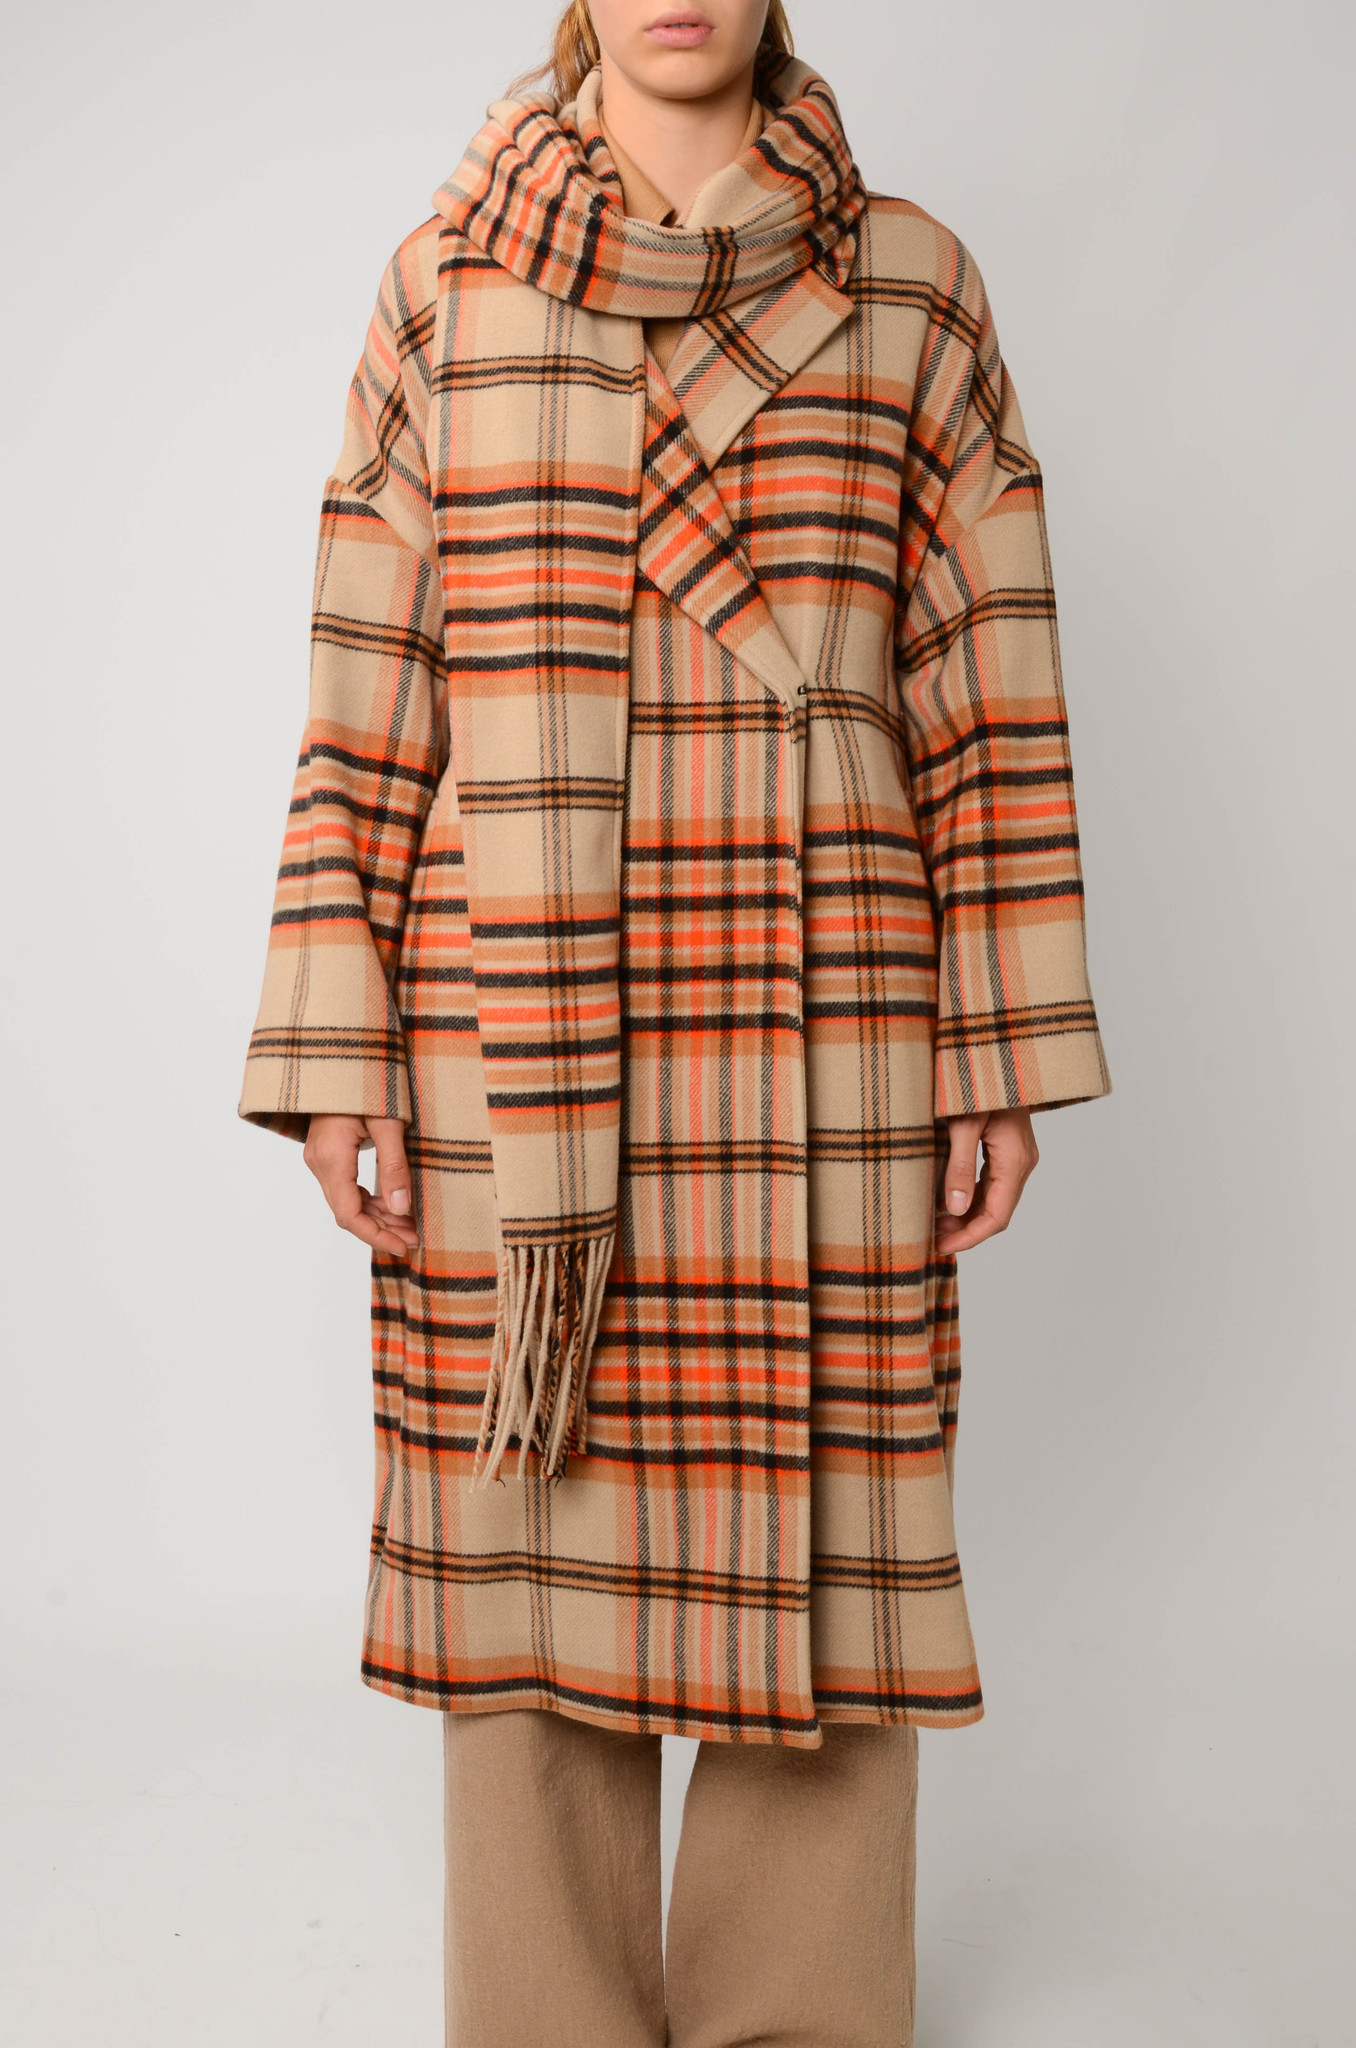 CHECKERED COAT IN ORANGE AND CAMEL-3